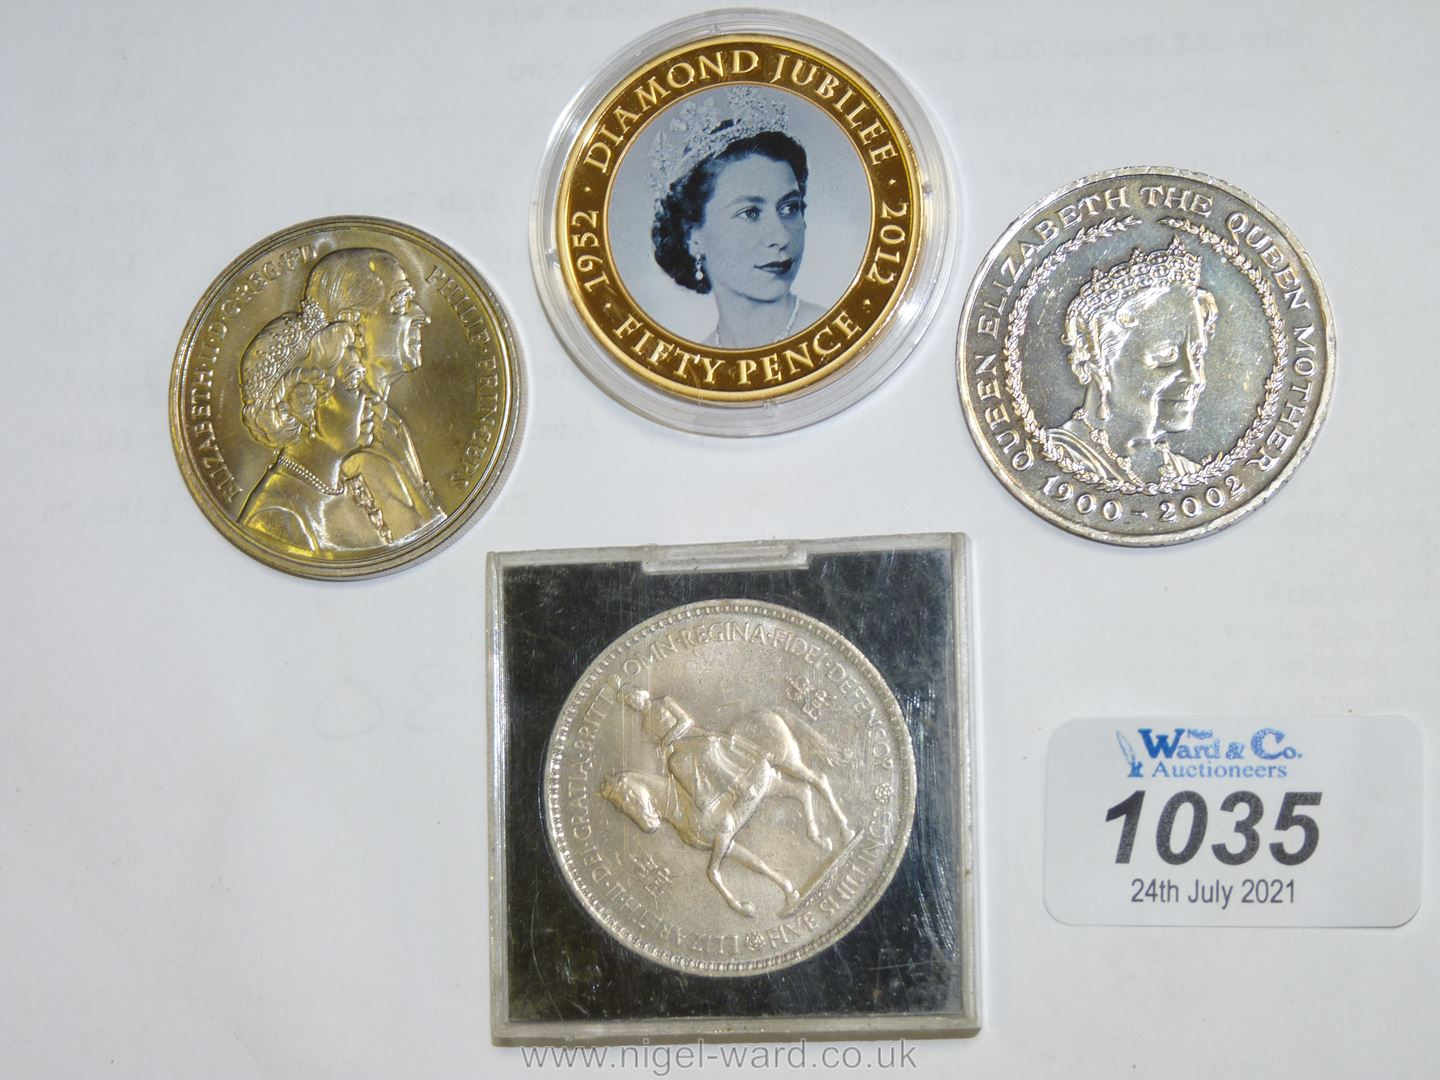 Four commemorative coins including Battle of Waterloo, Prince Regent, Queen Mother five pound coin,